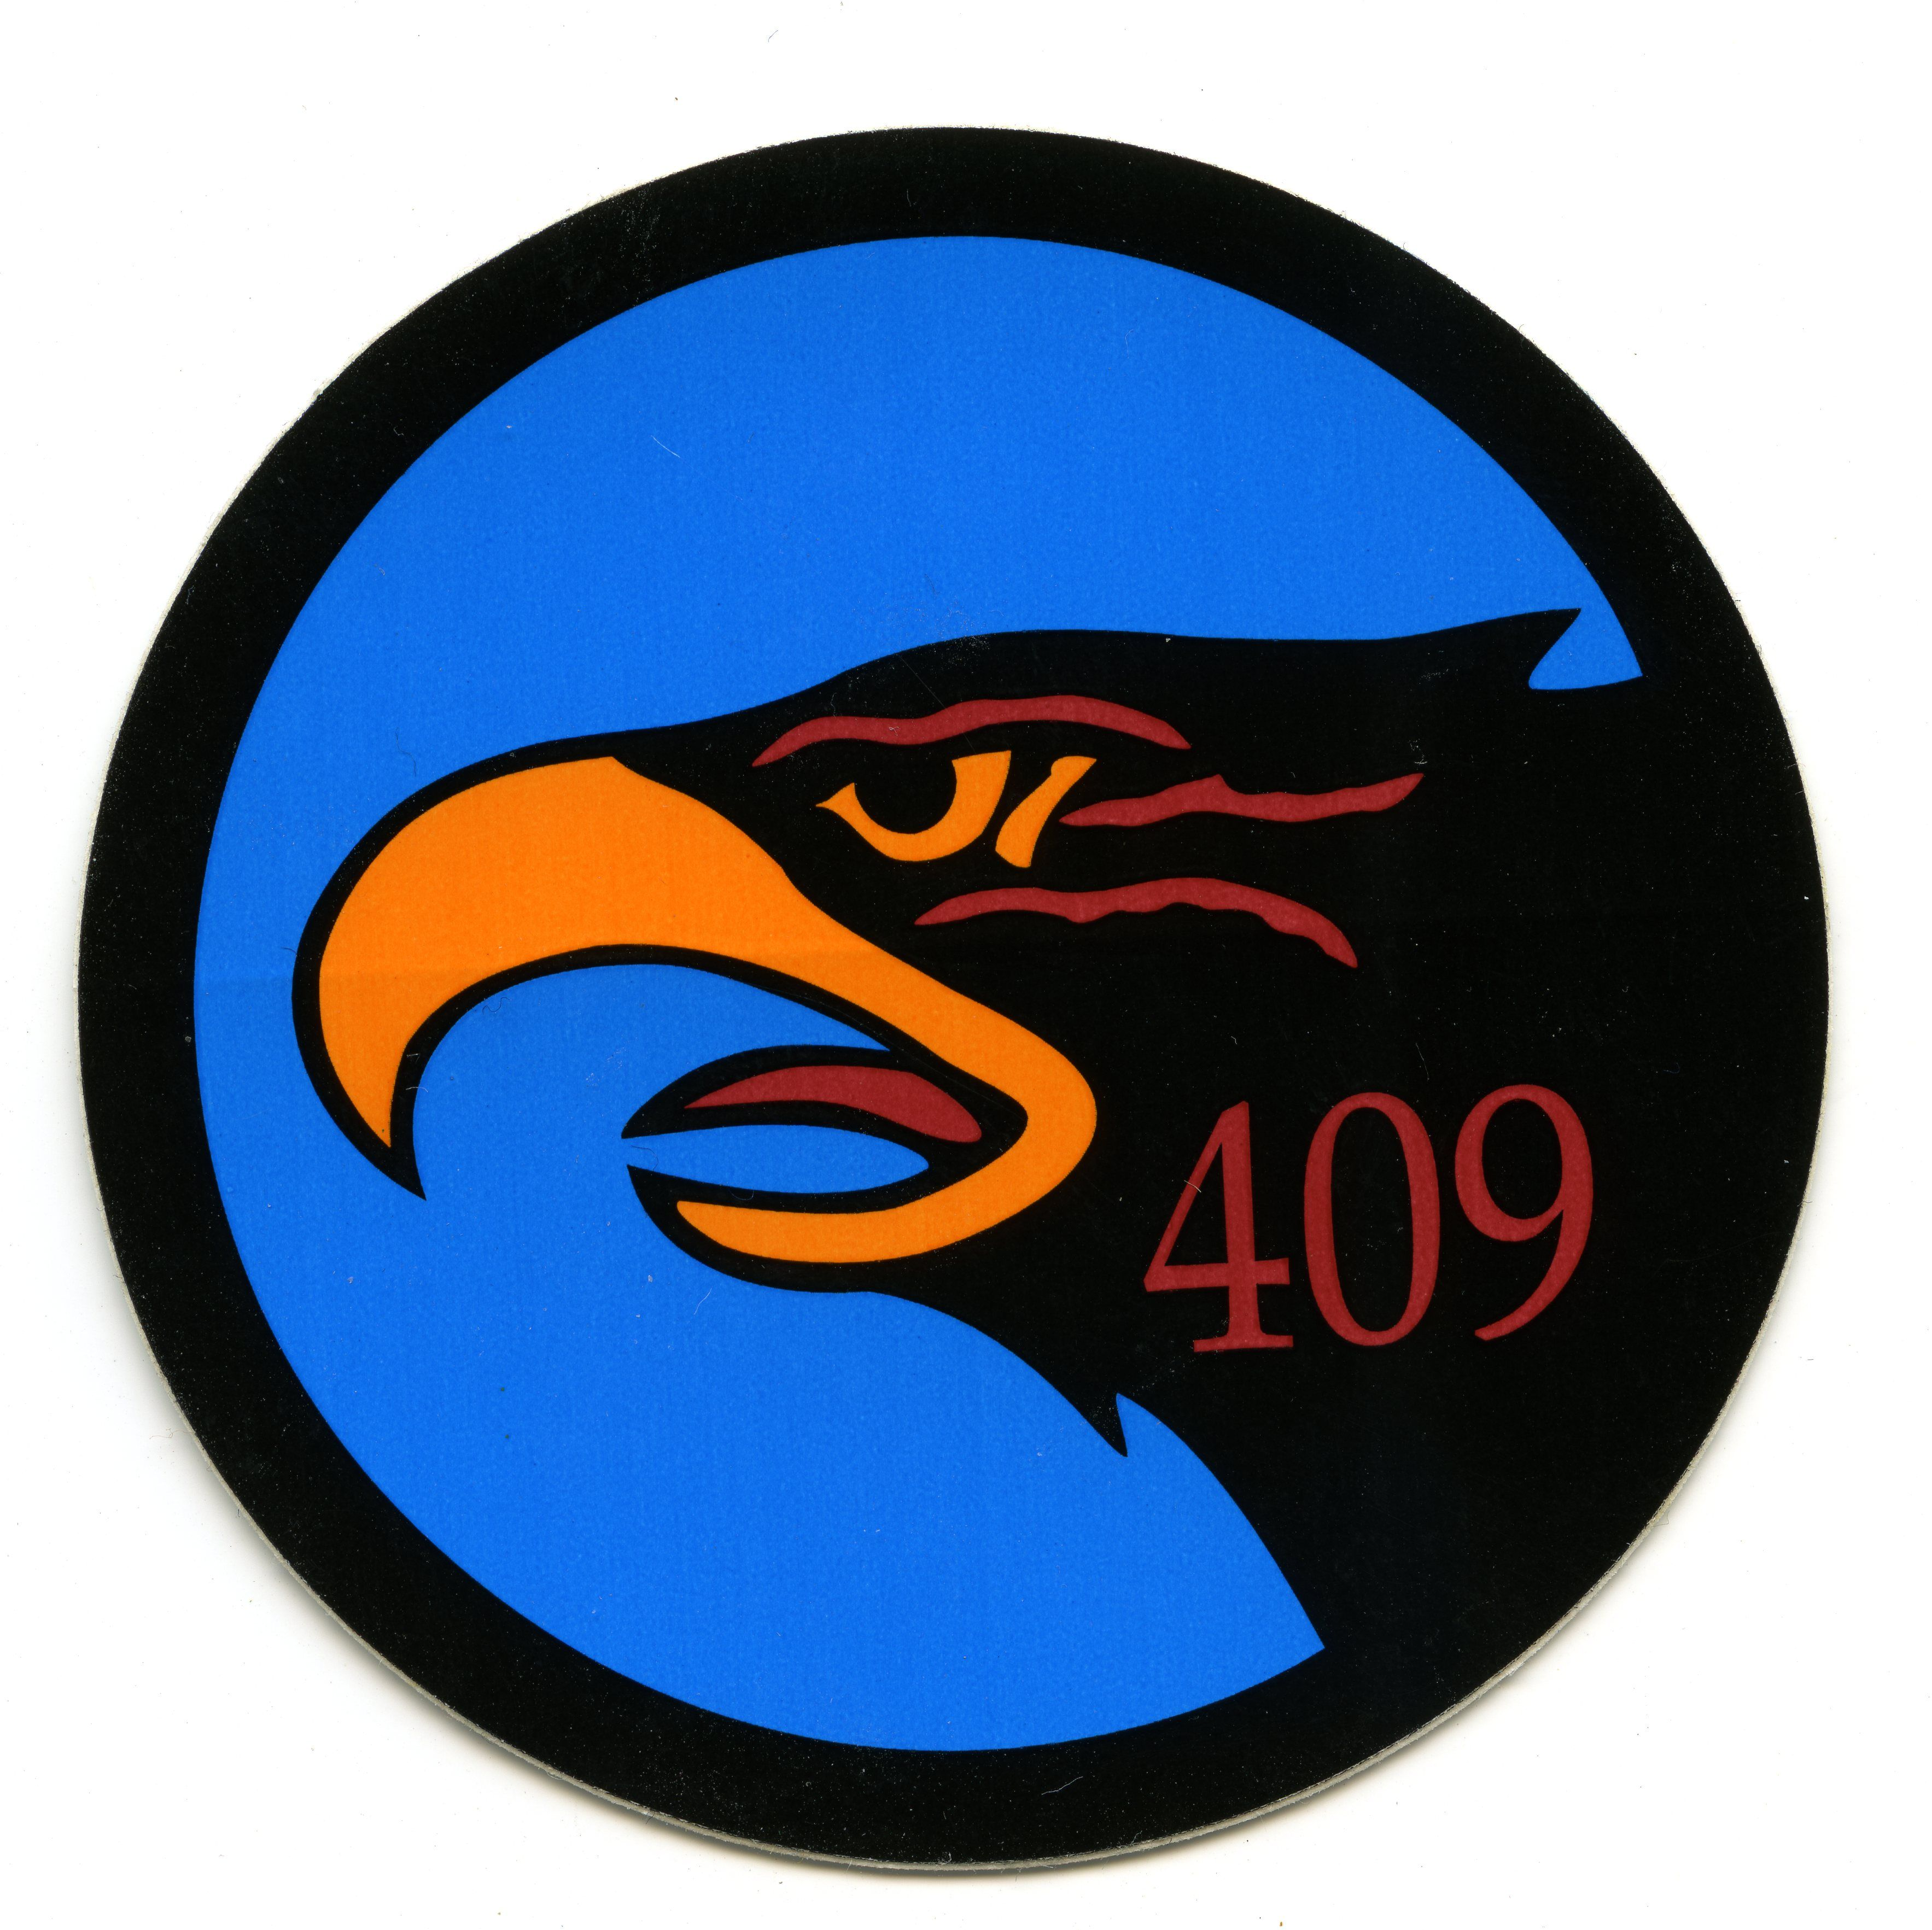 RCAF 409 Squadron Sticker Canadian military, Military